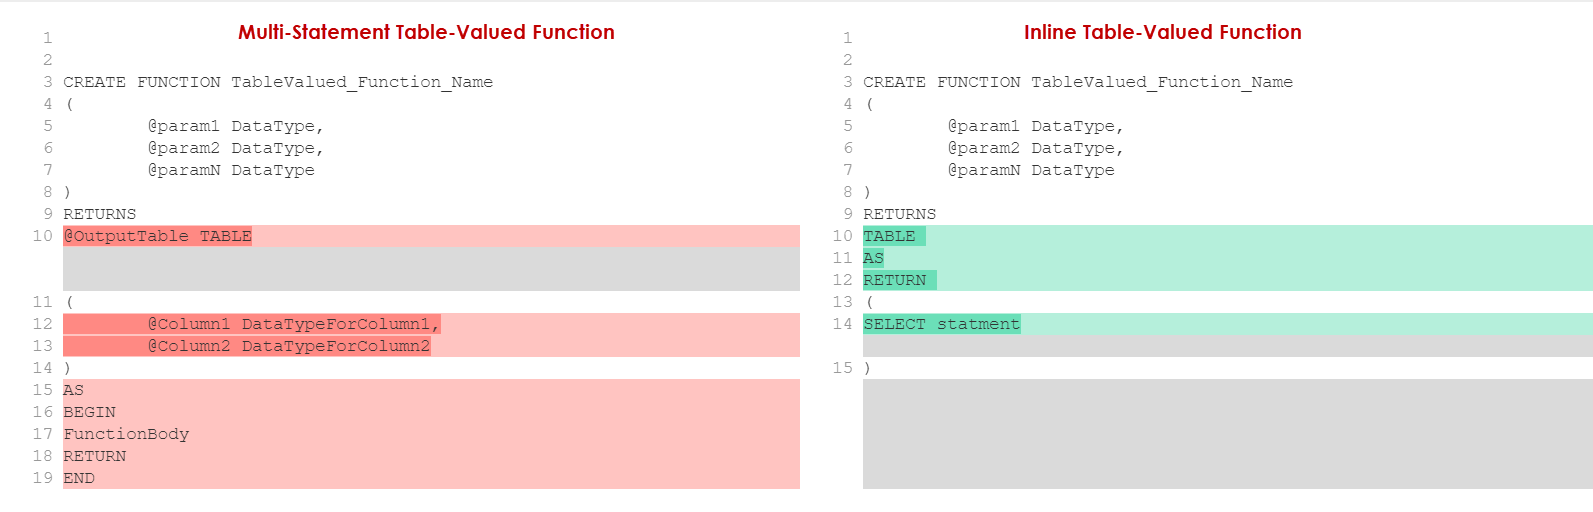 The syntax differences between Multi-Statment Table-Valued Function  and Inline Table-Valued Function